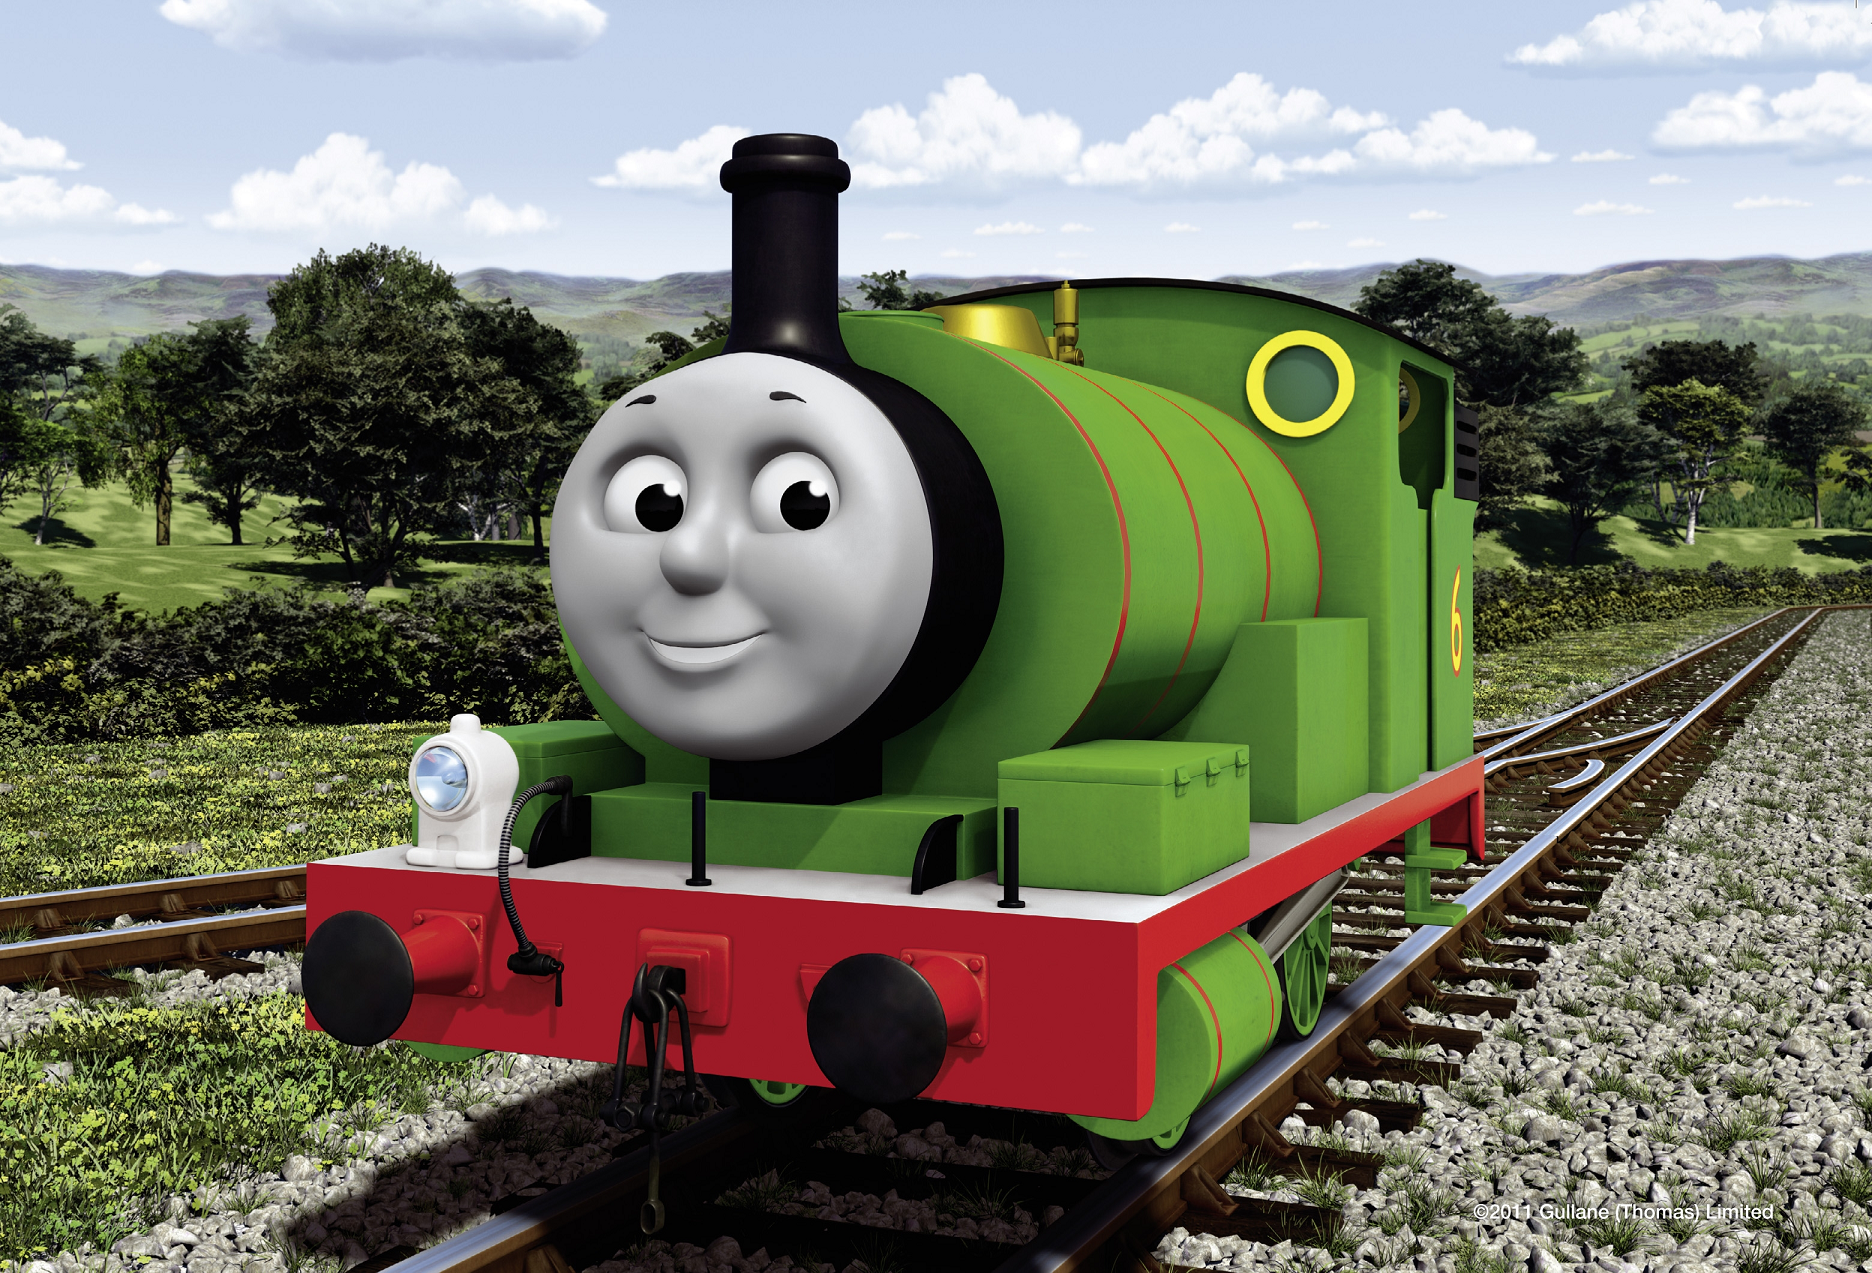 Boazhall thomas the train thecheapjerseys Image collections